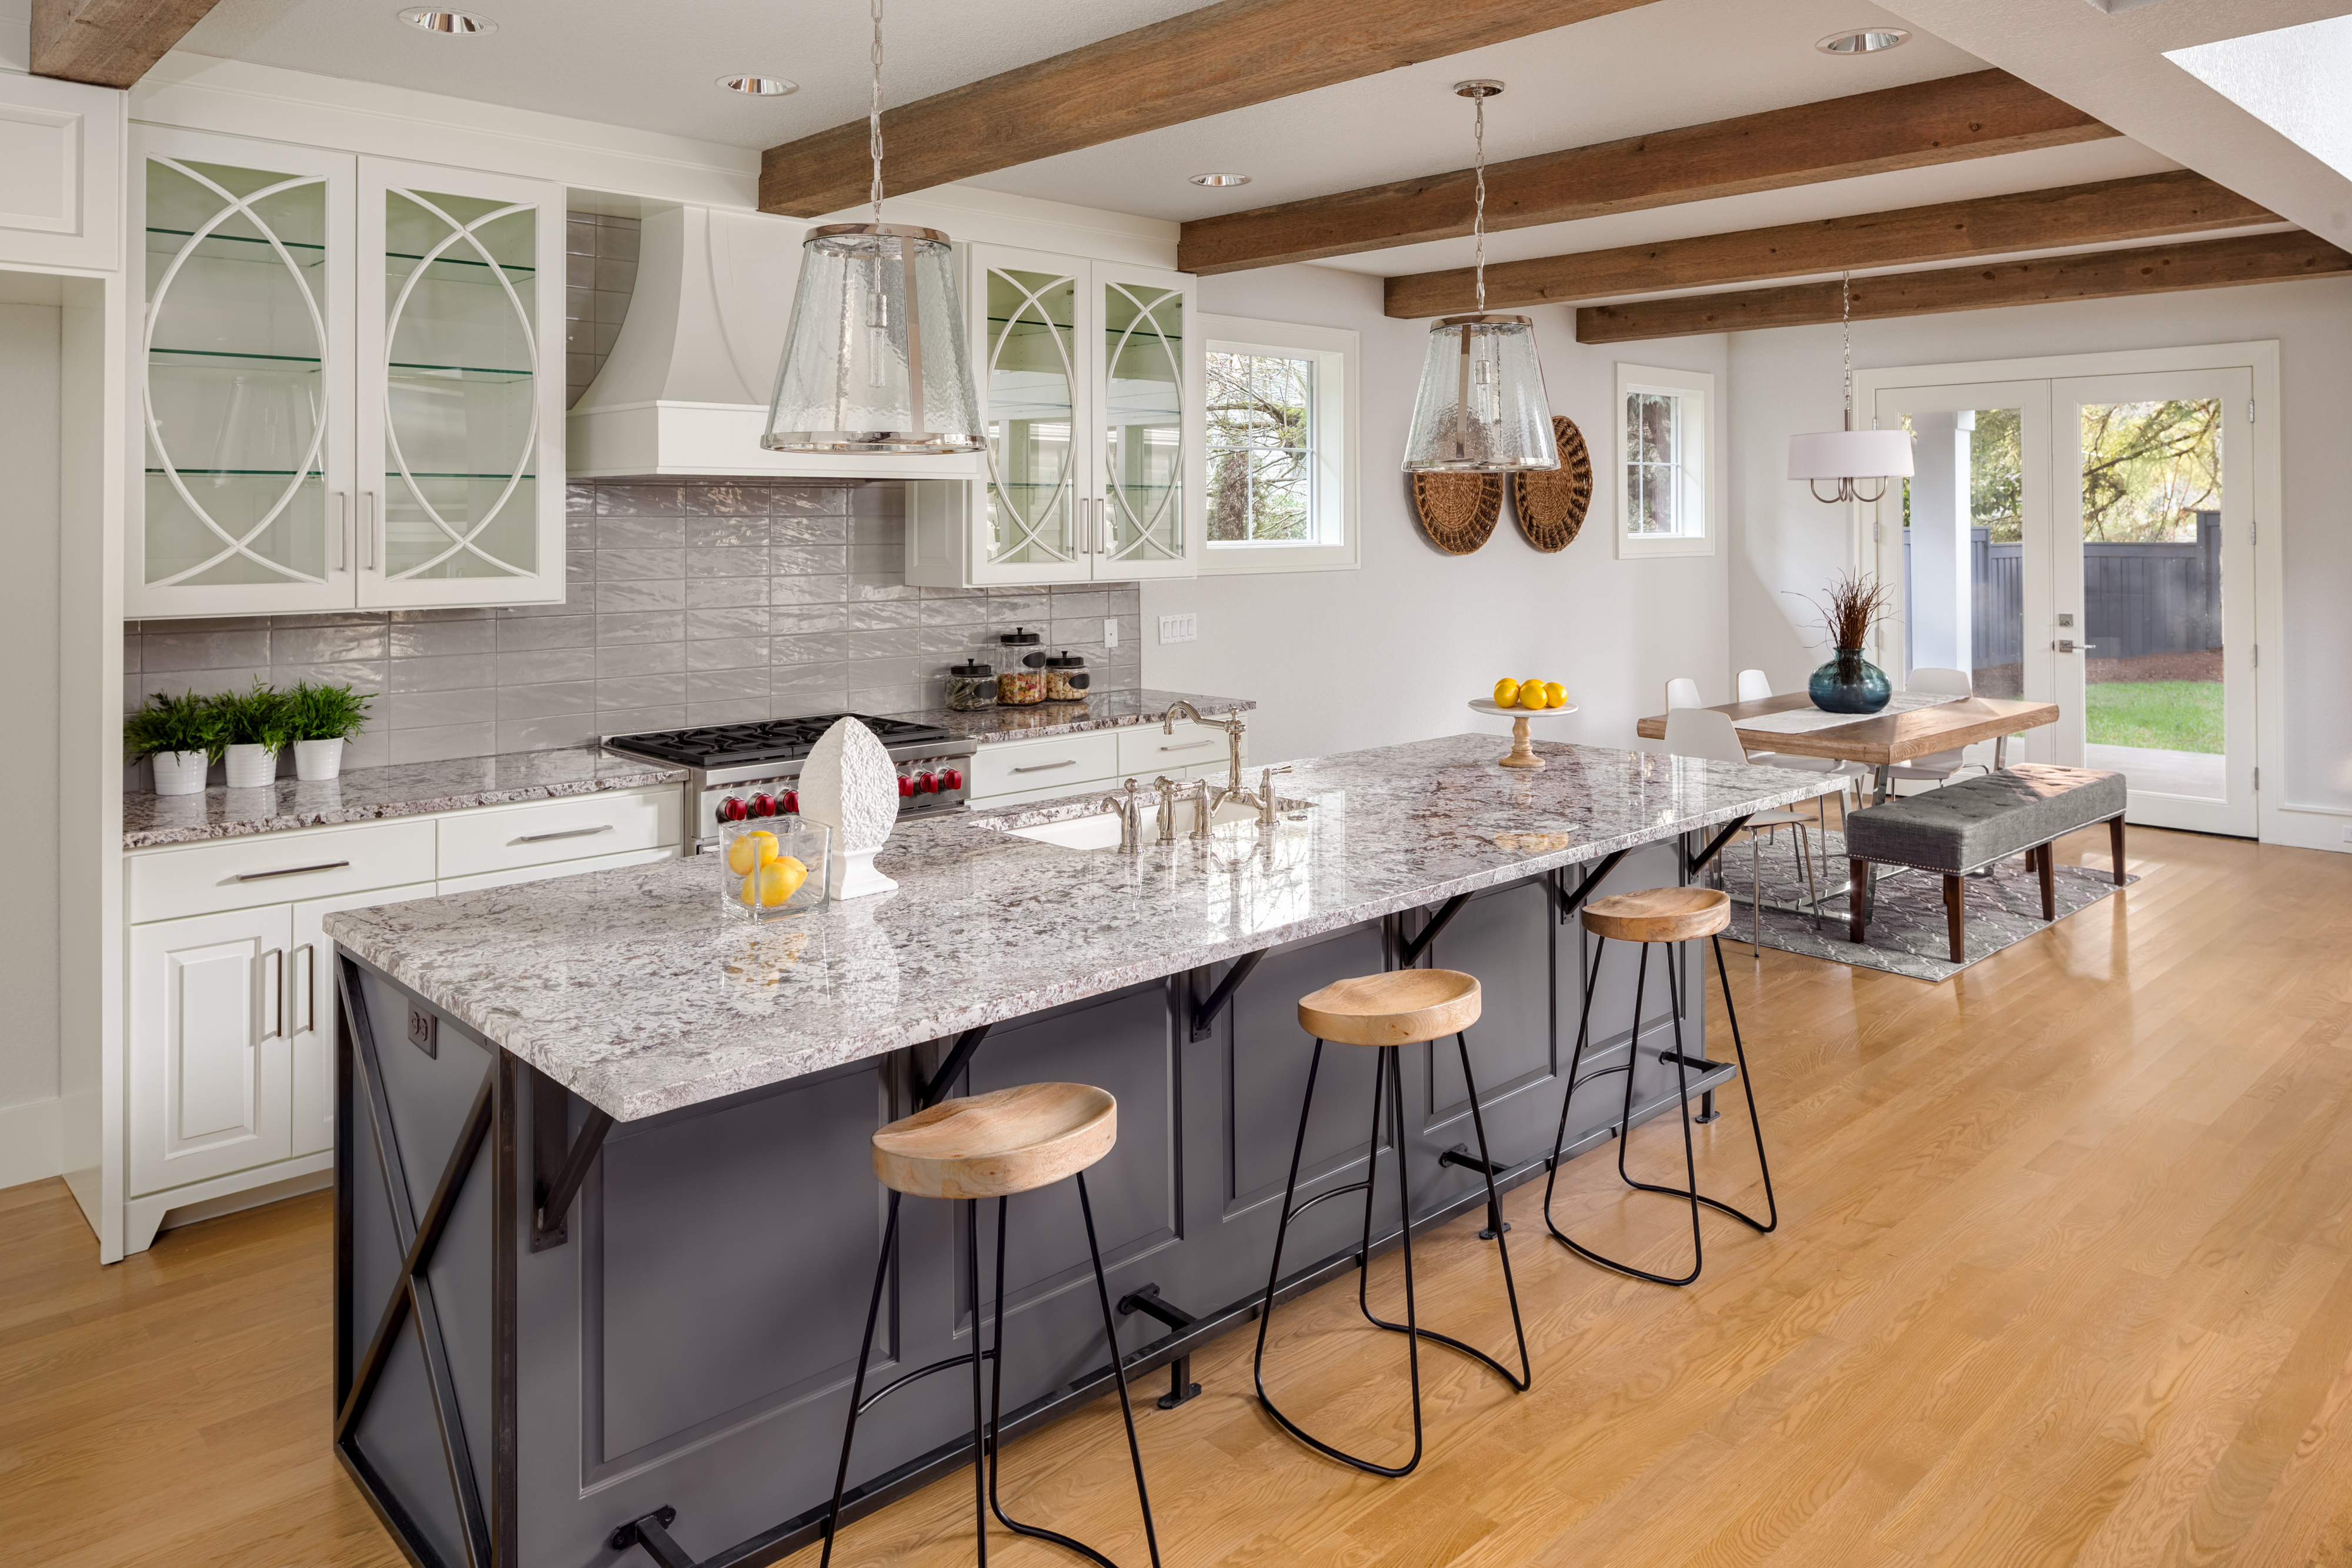 How to Estimate the Cost of Quartz Countertops | Hunker